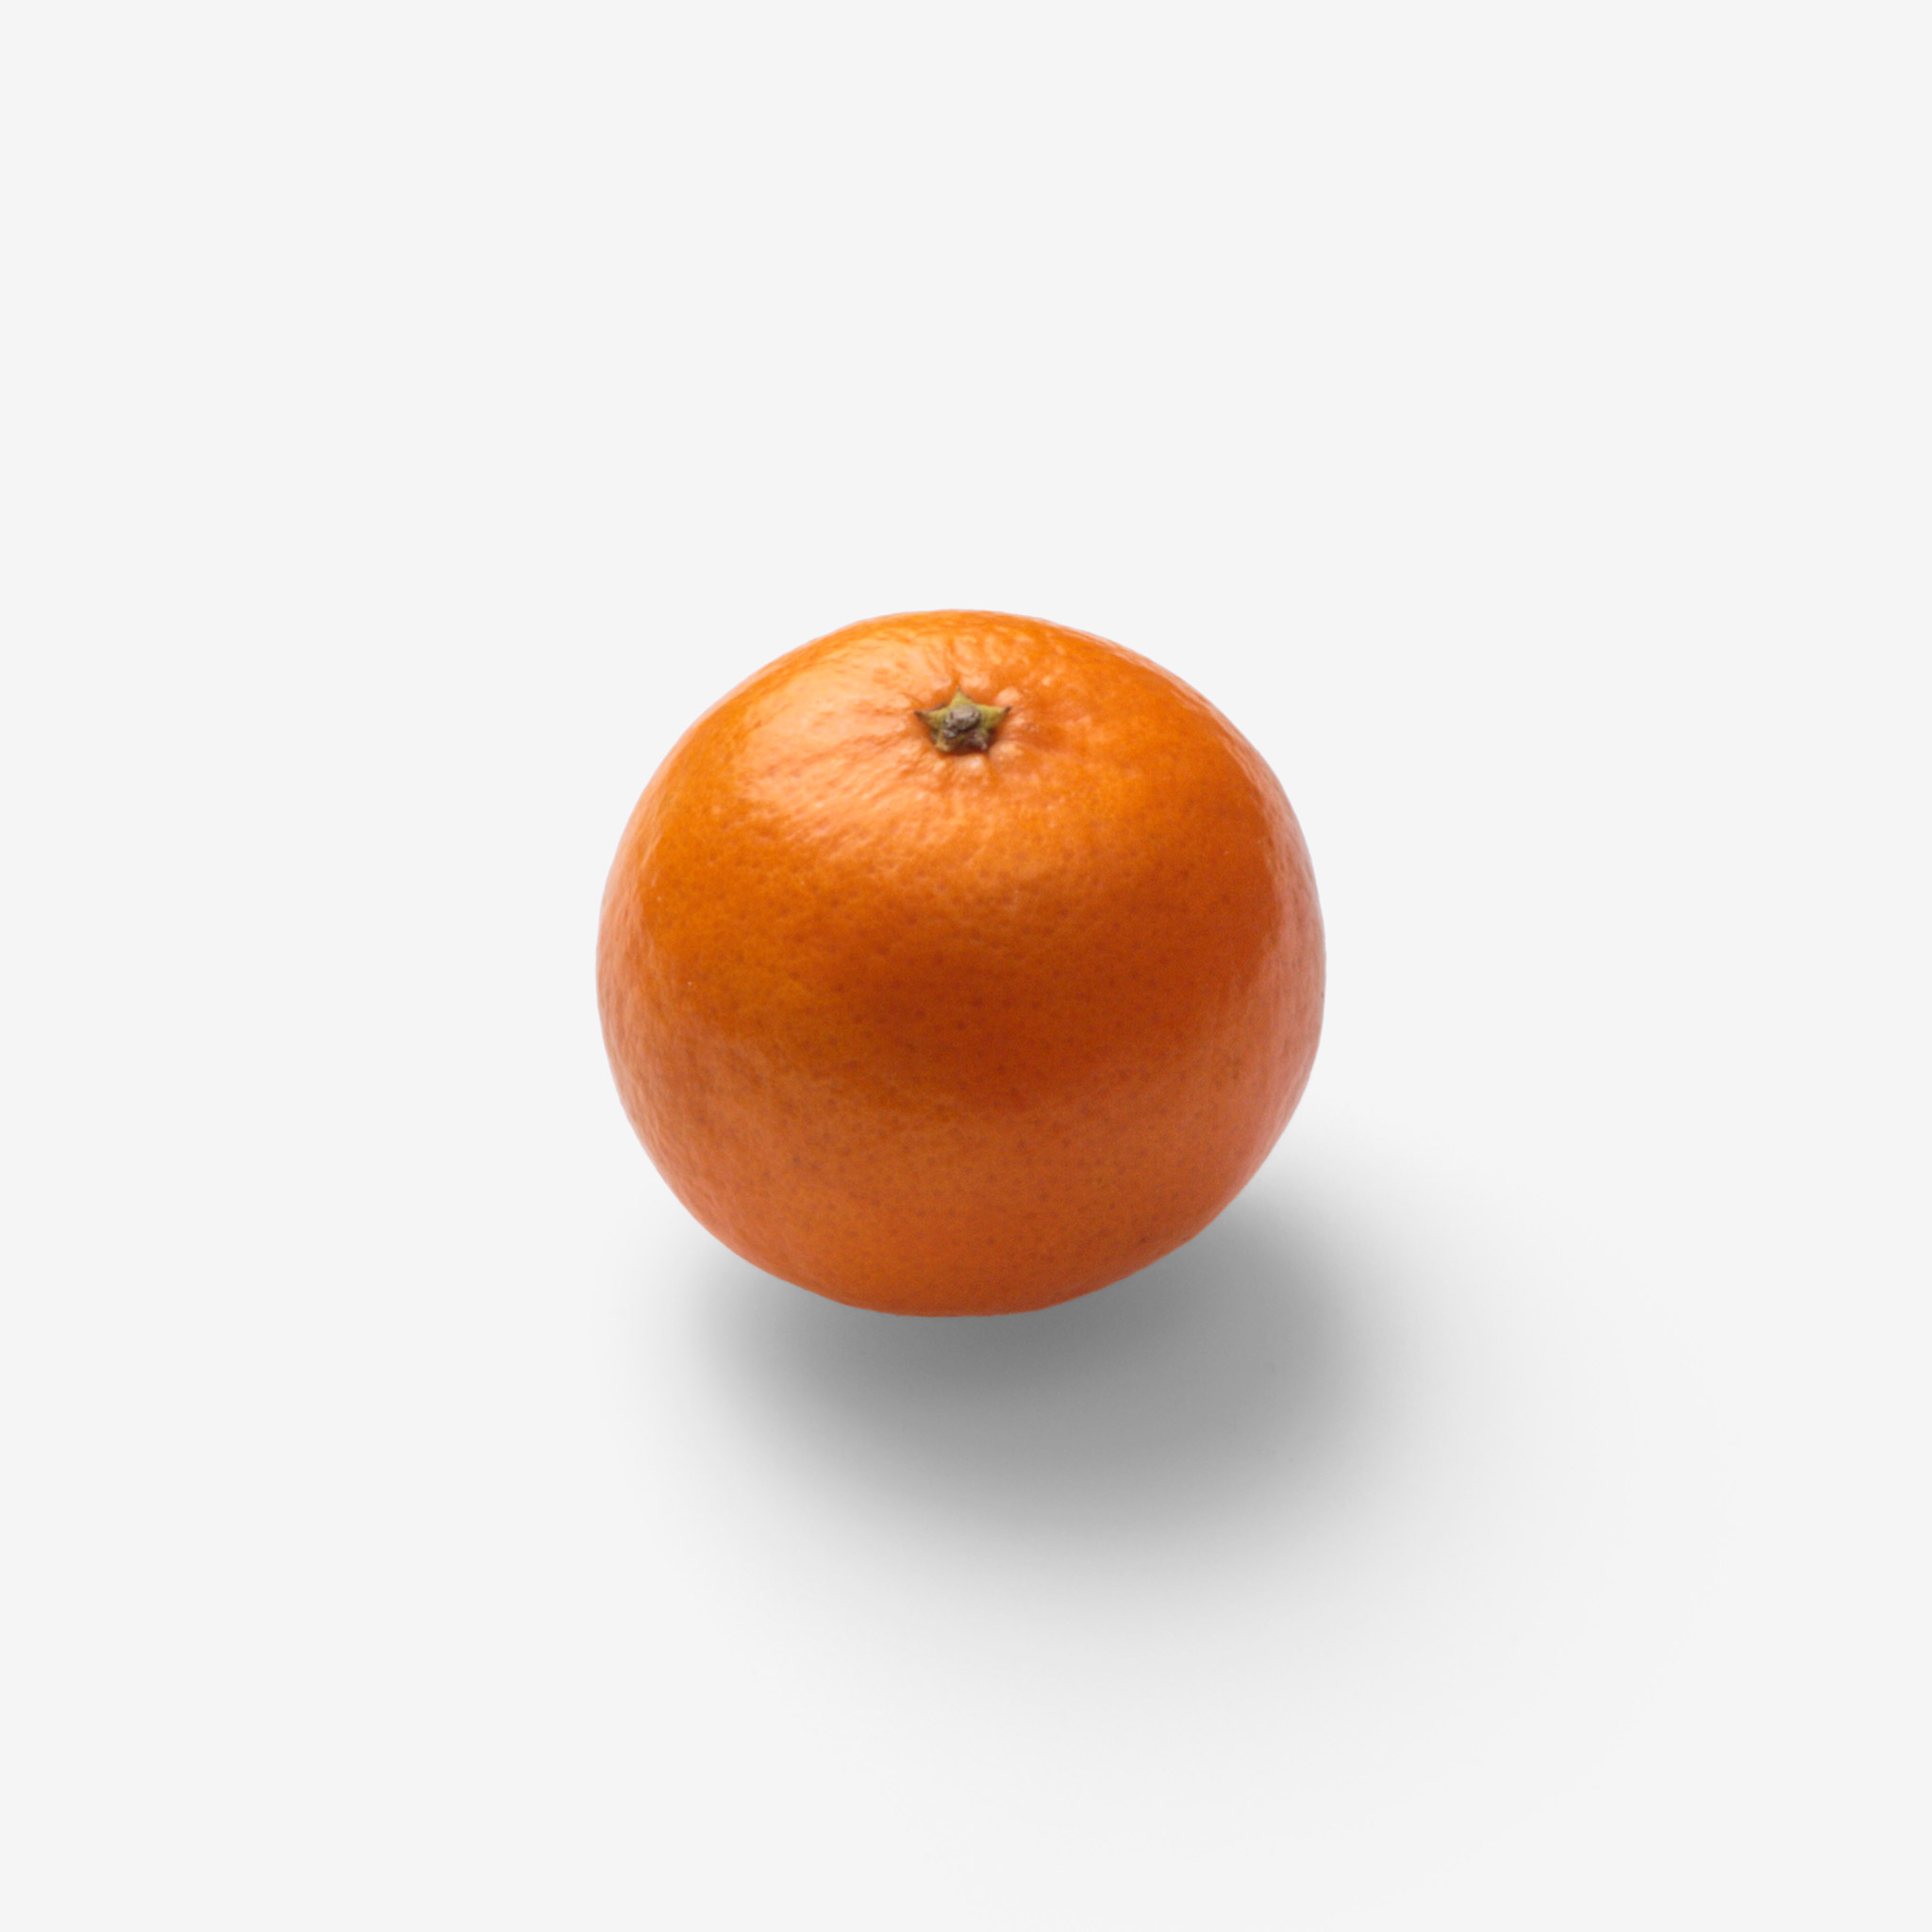 Orange PSD image with transparent background